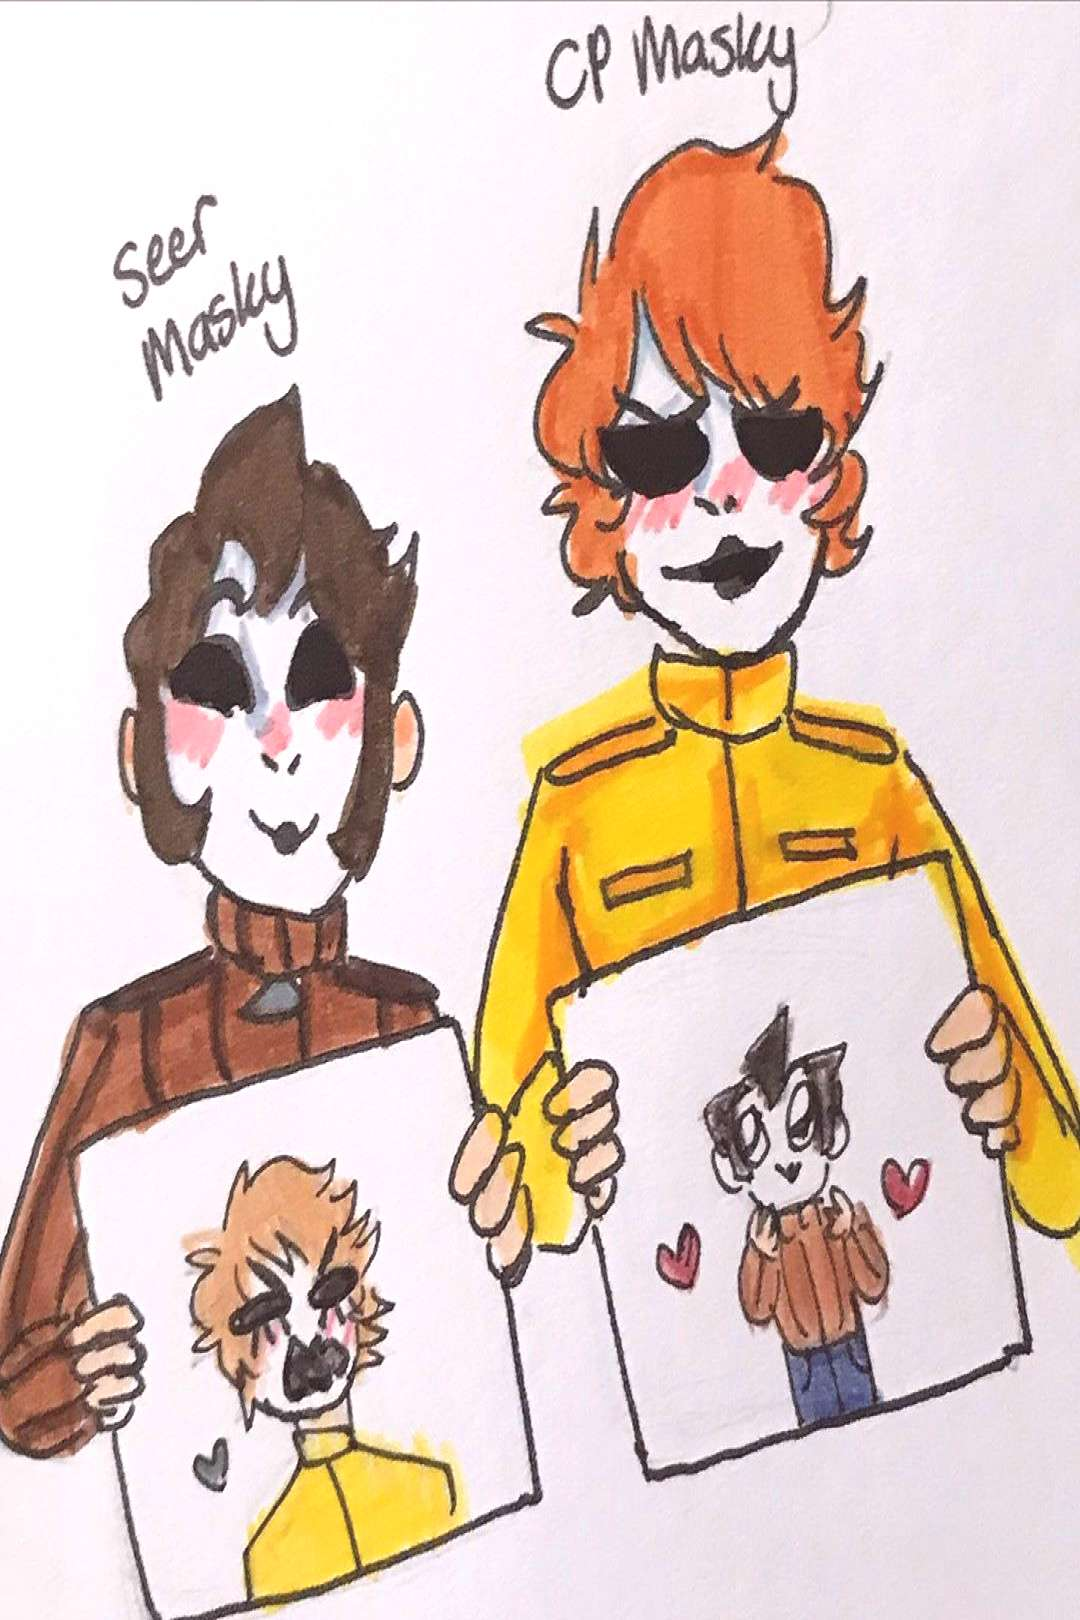 quotI just think theyre pretty neatquot Here are the boys and them dra